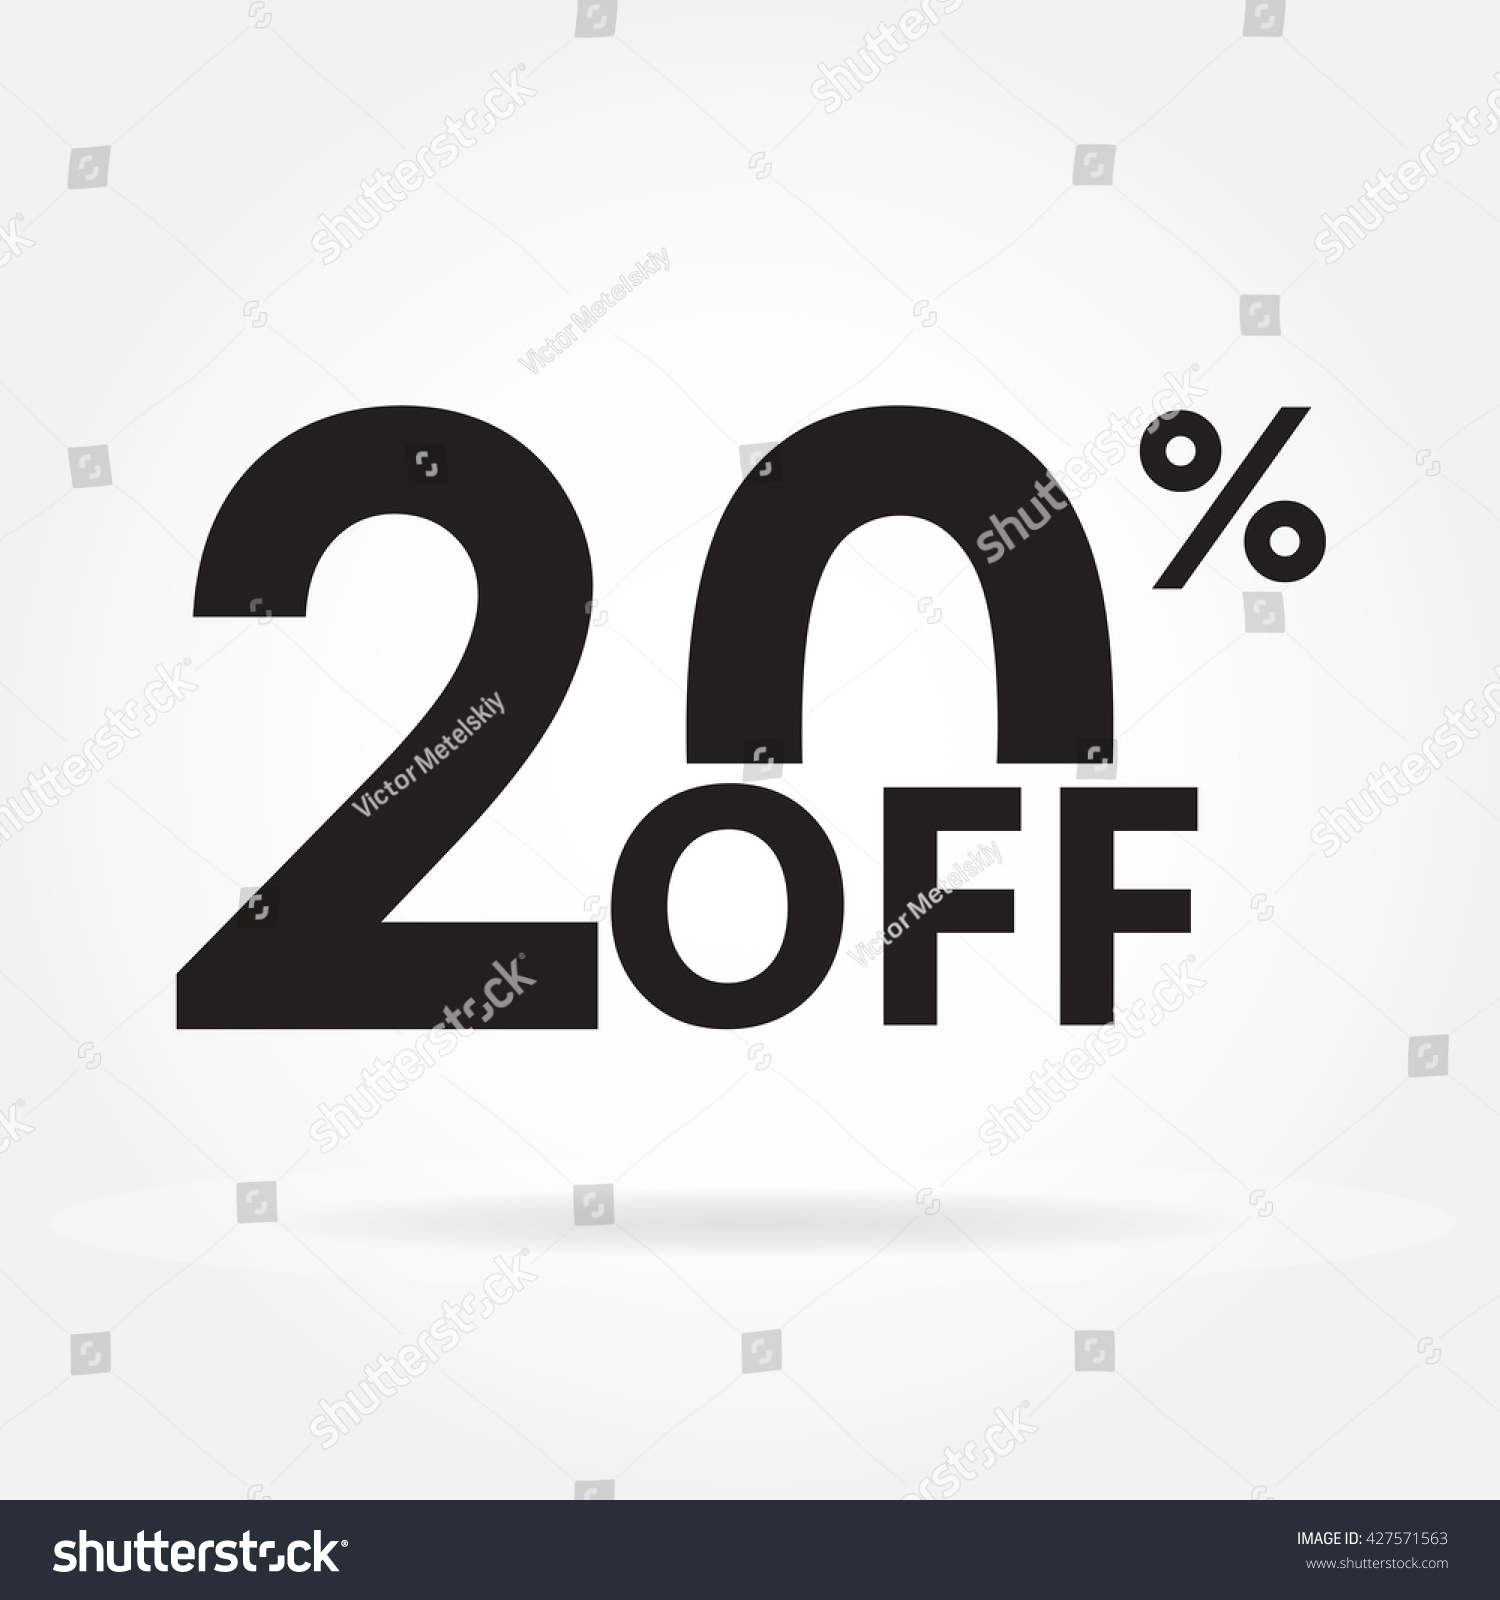 20 off sale discount price sign stock illustration 427571563